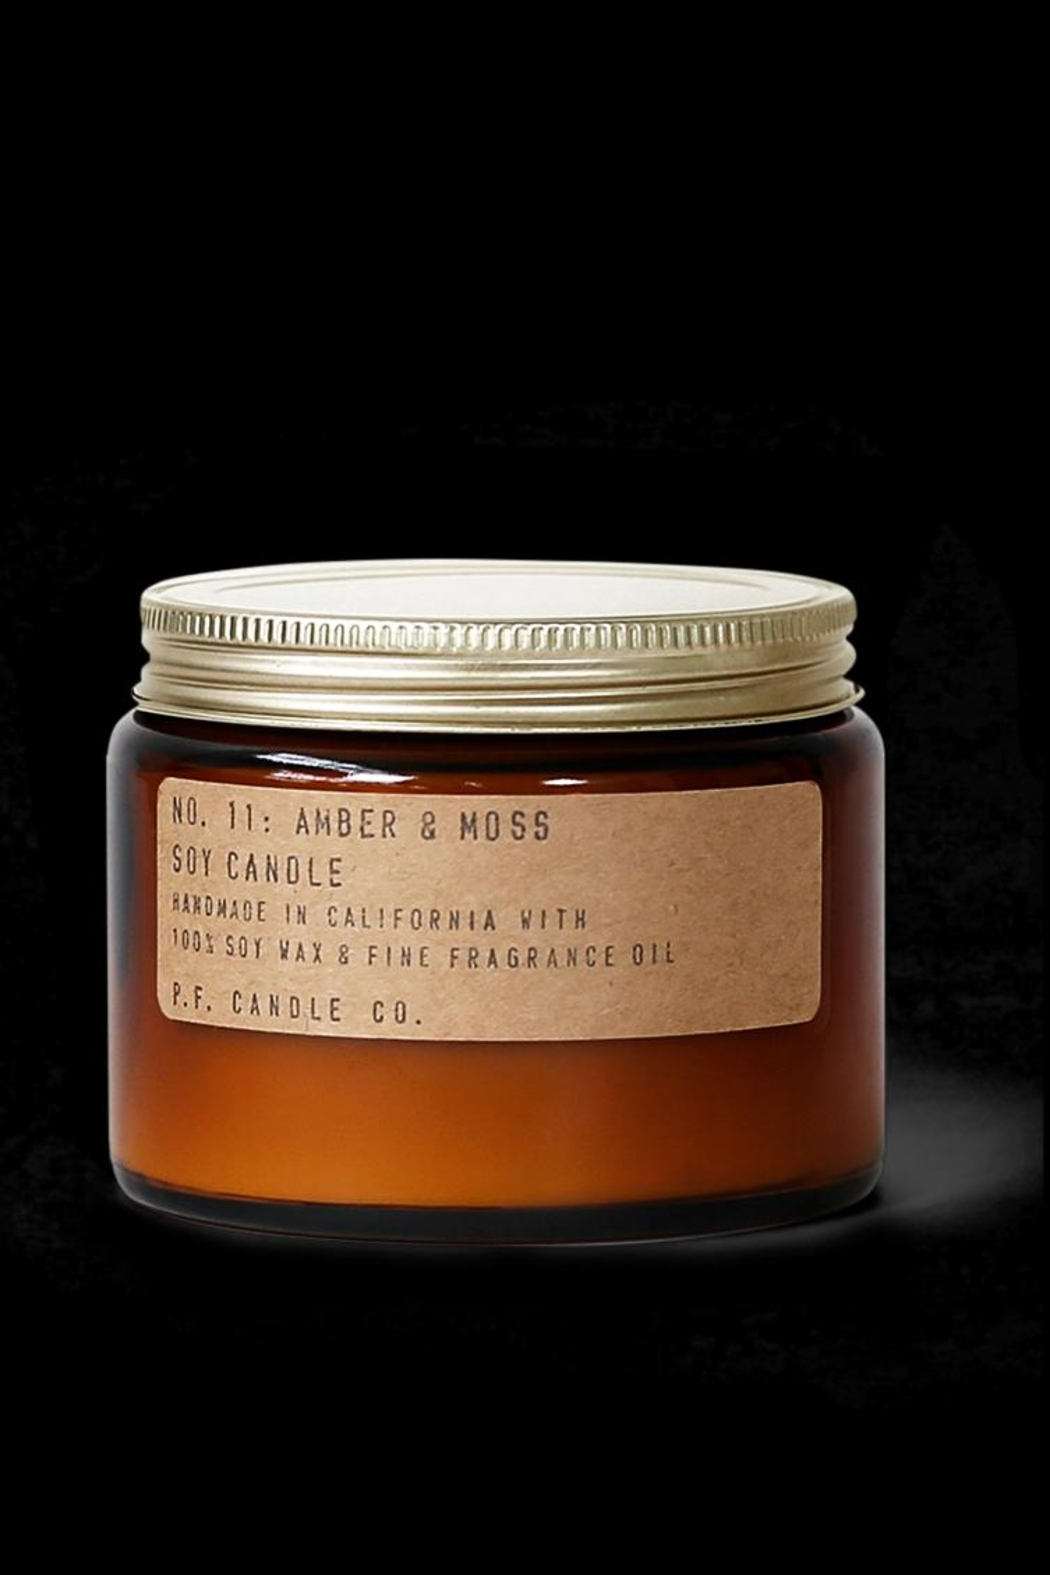 P.F. Candle Co. Amber & Moss Candle - Main Image